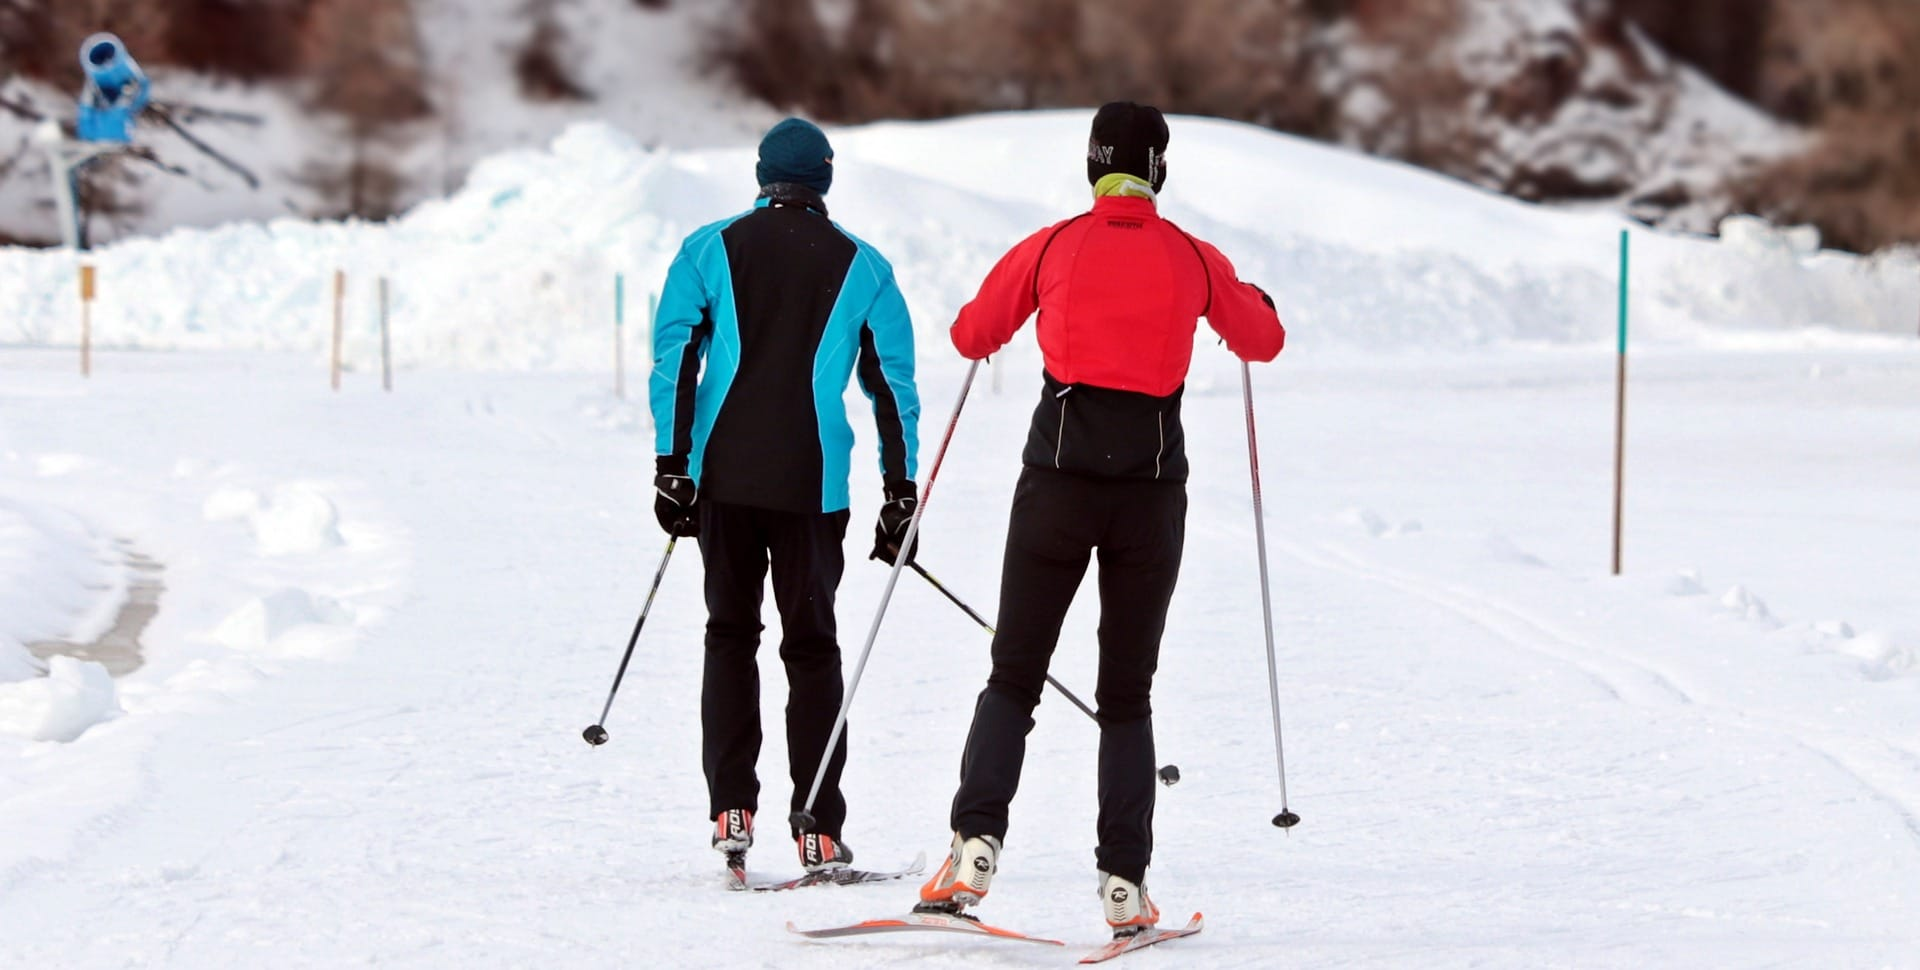 two skiers on track